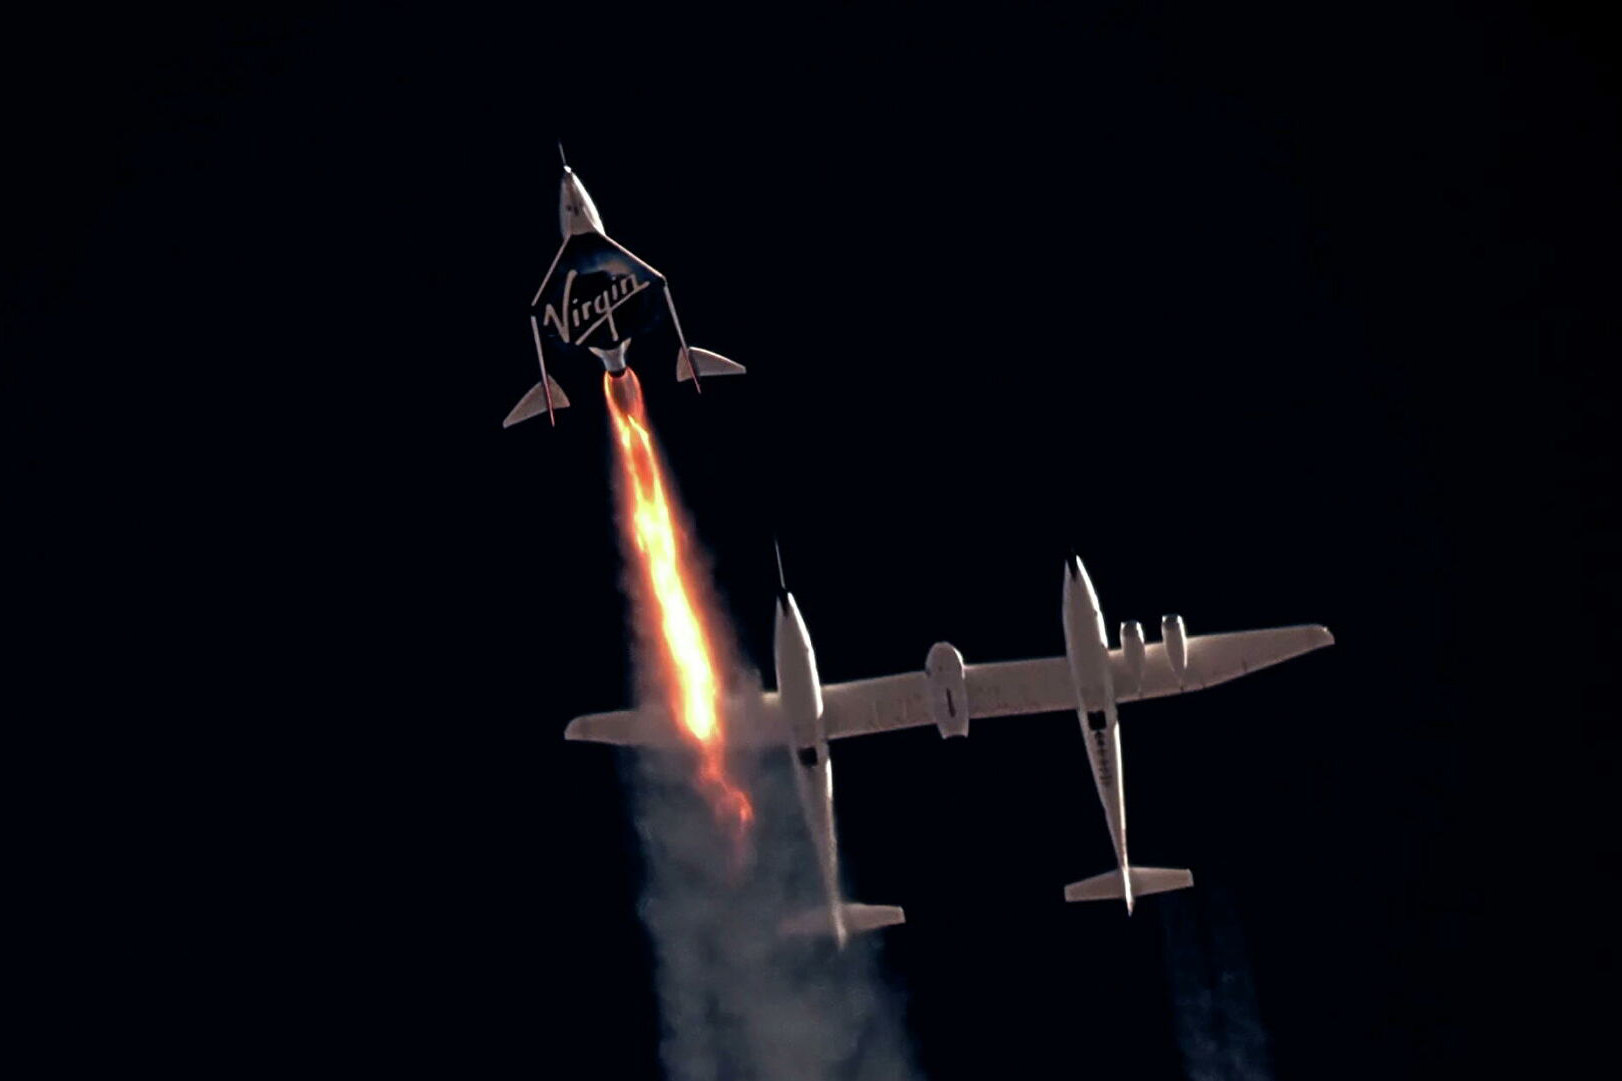 Virgin Galactic's passenger rocket plane VSS Unity, carrying Richard Branson and crew, begins its ascent to the edge of space above Spaceport America near Truth or Consequences, New Mexico, U.S. July 11, 2021 in a still image from video.